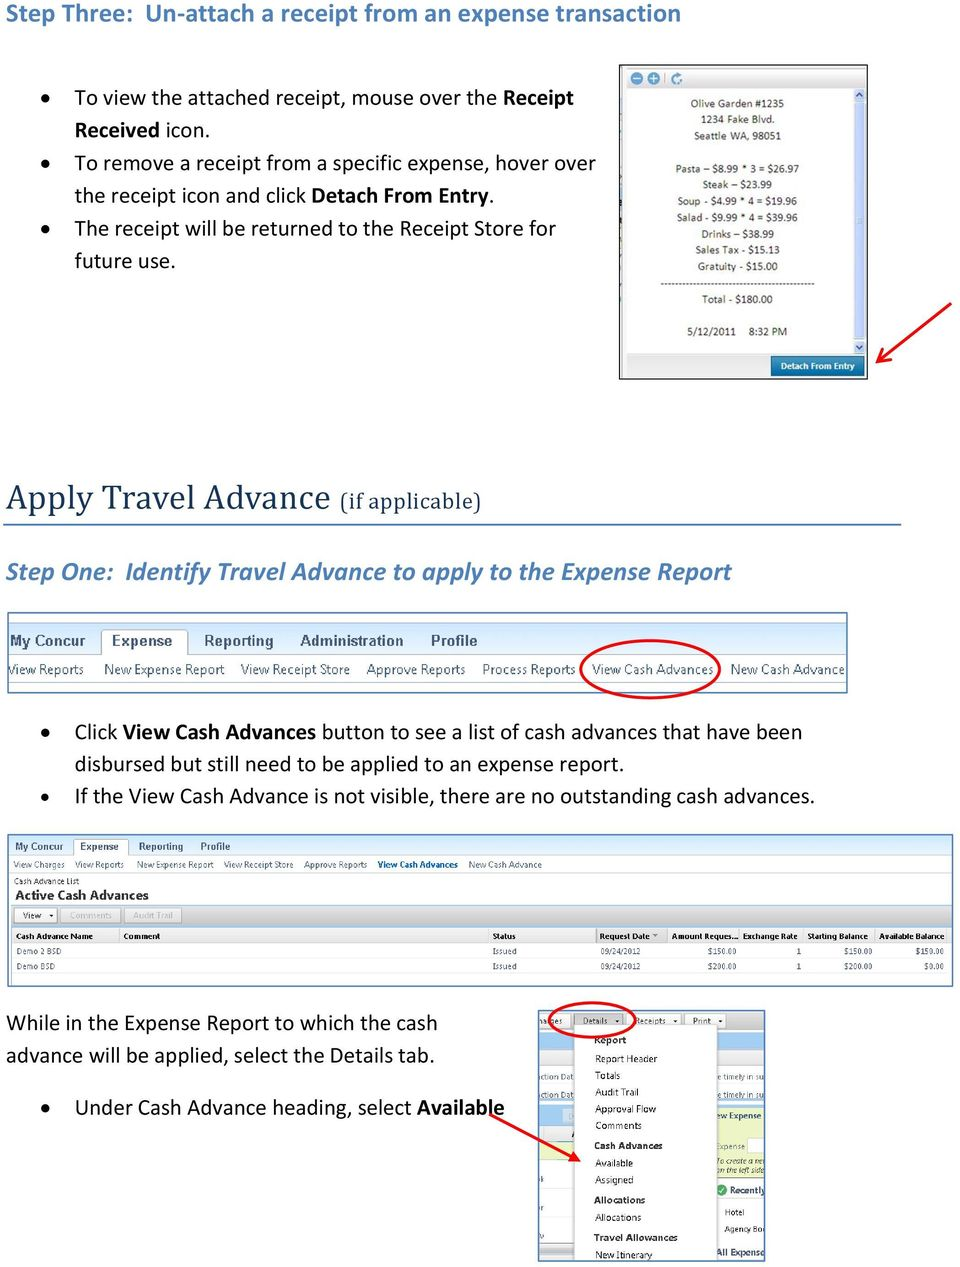 Apply Travel Advance (if applicable) Step One: Identify Travel Advance to apply to the Expense Report Click View Cash Advances button to see a list of cash advances that have been disbursed